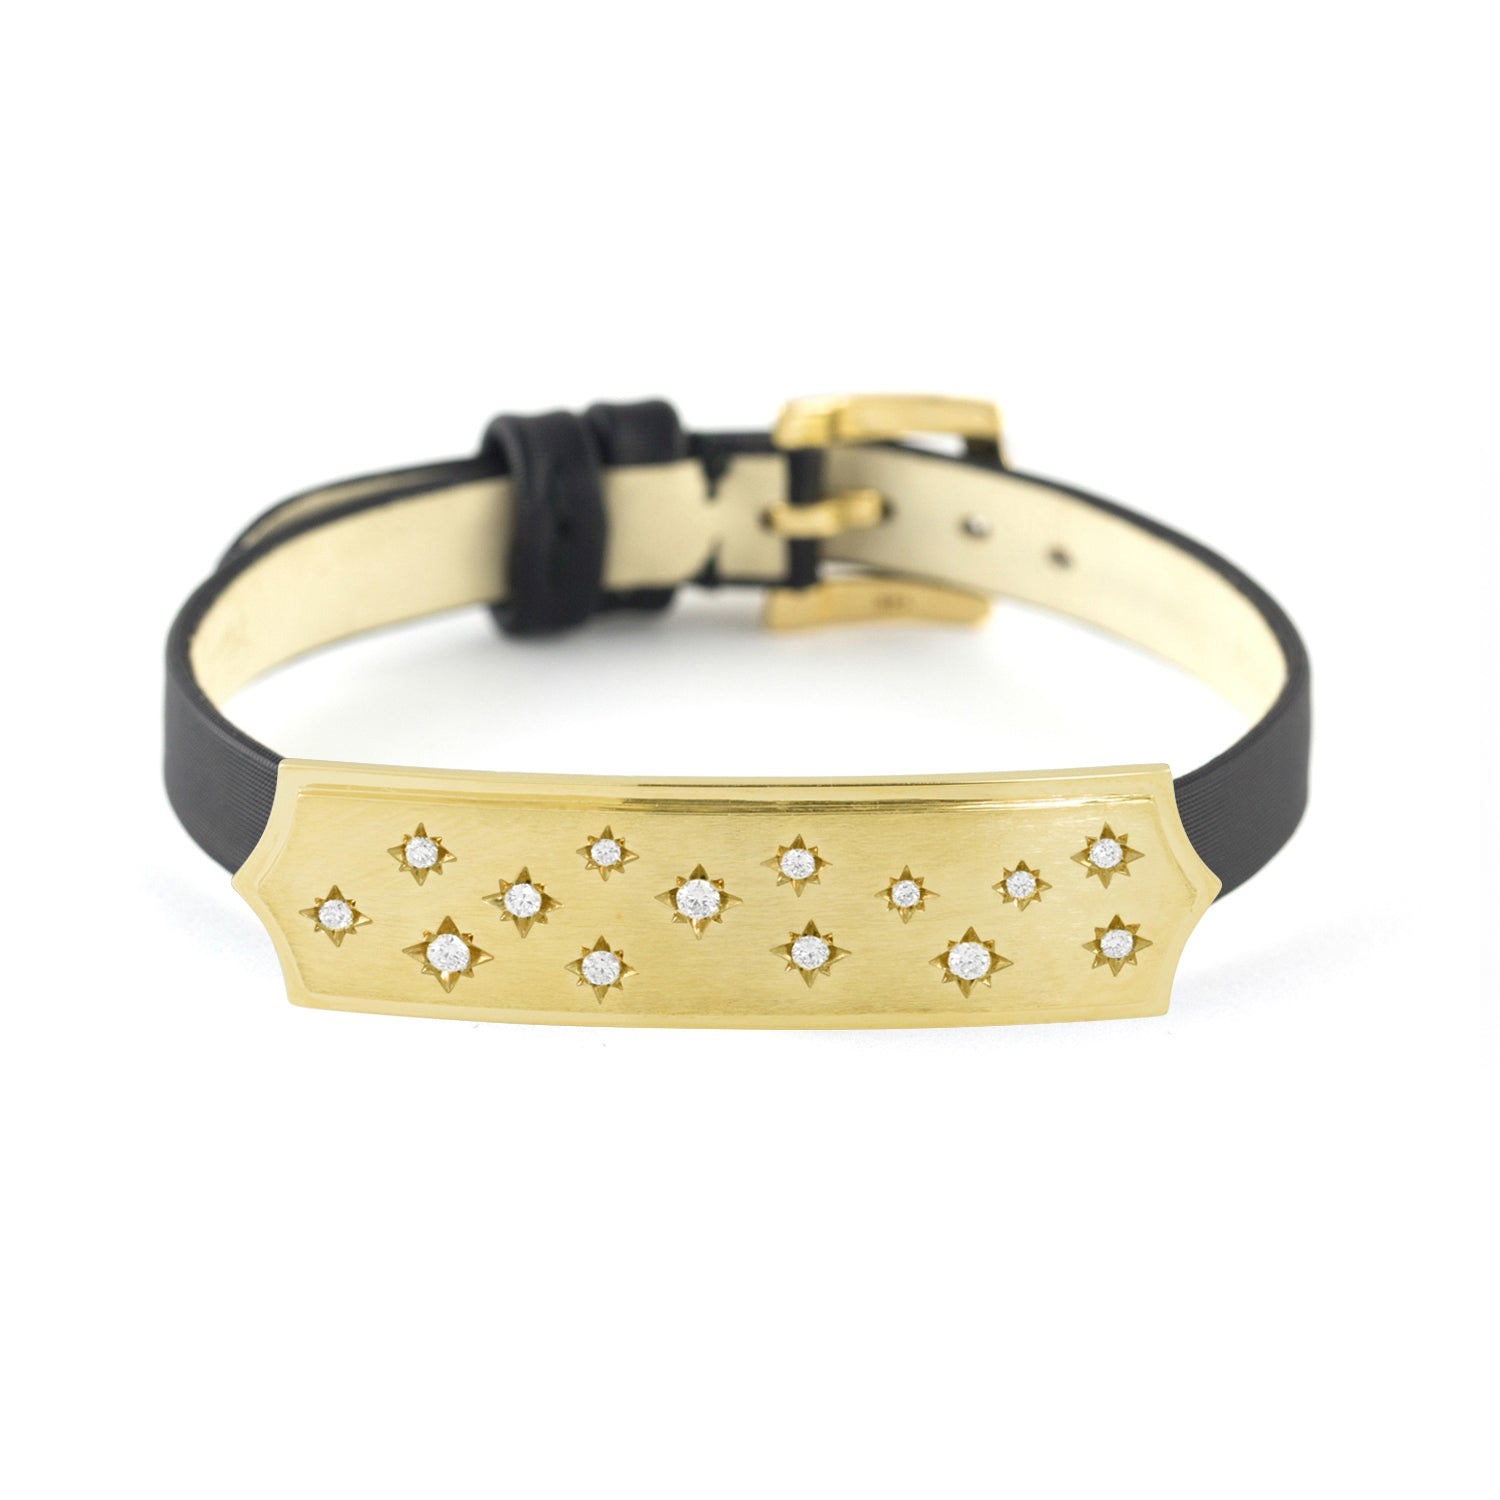 Gold Starred Bar Bracelet or Choker, Jewelry - Katherine & Josephine